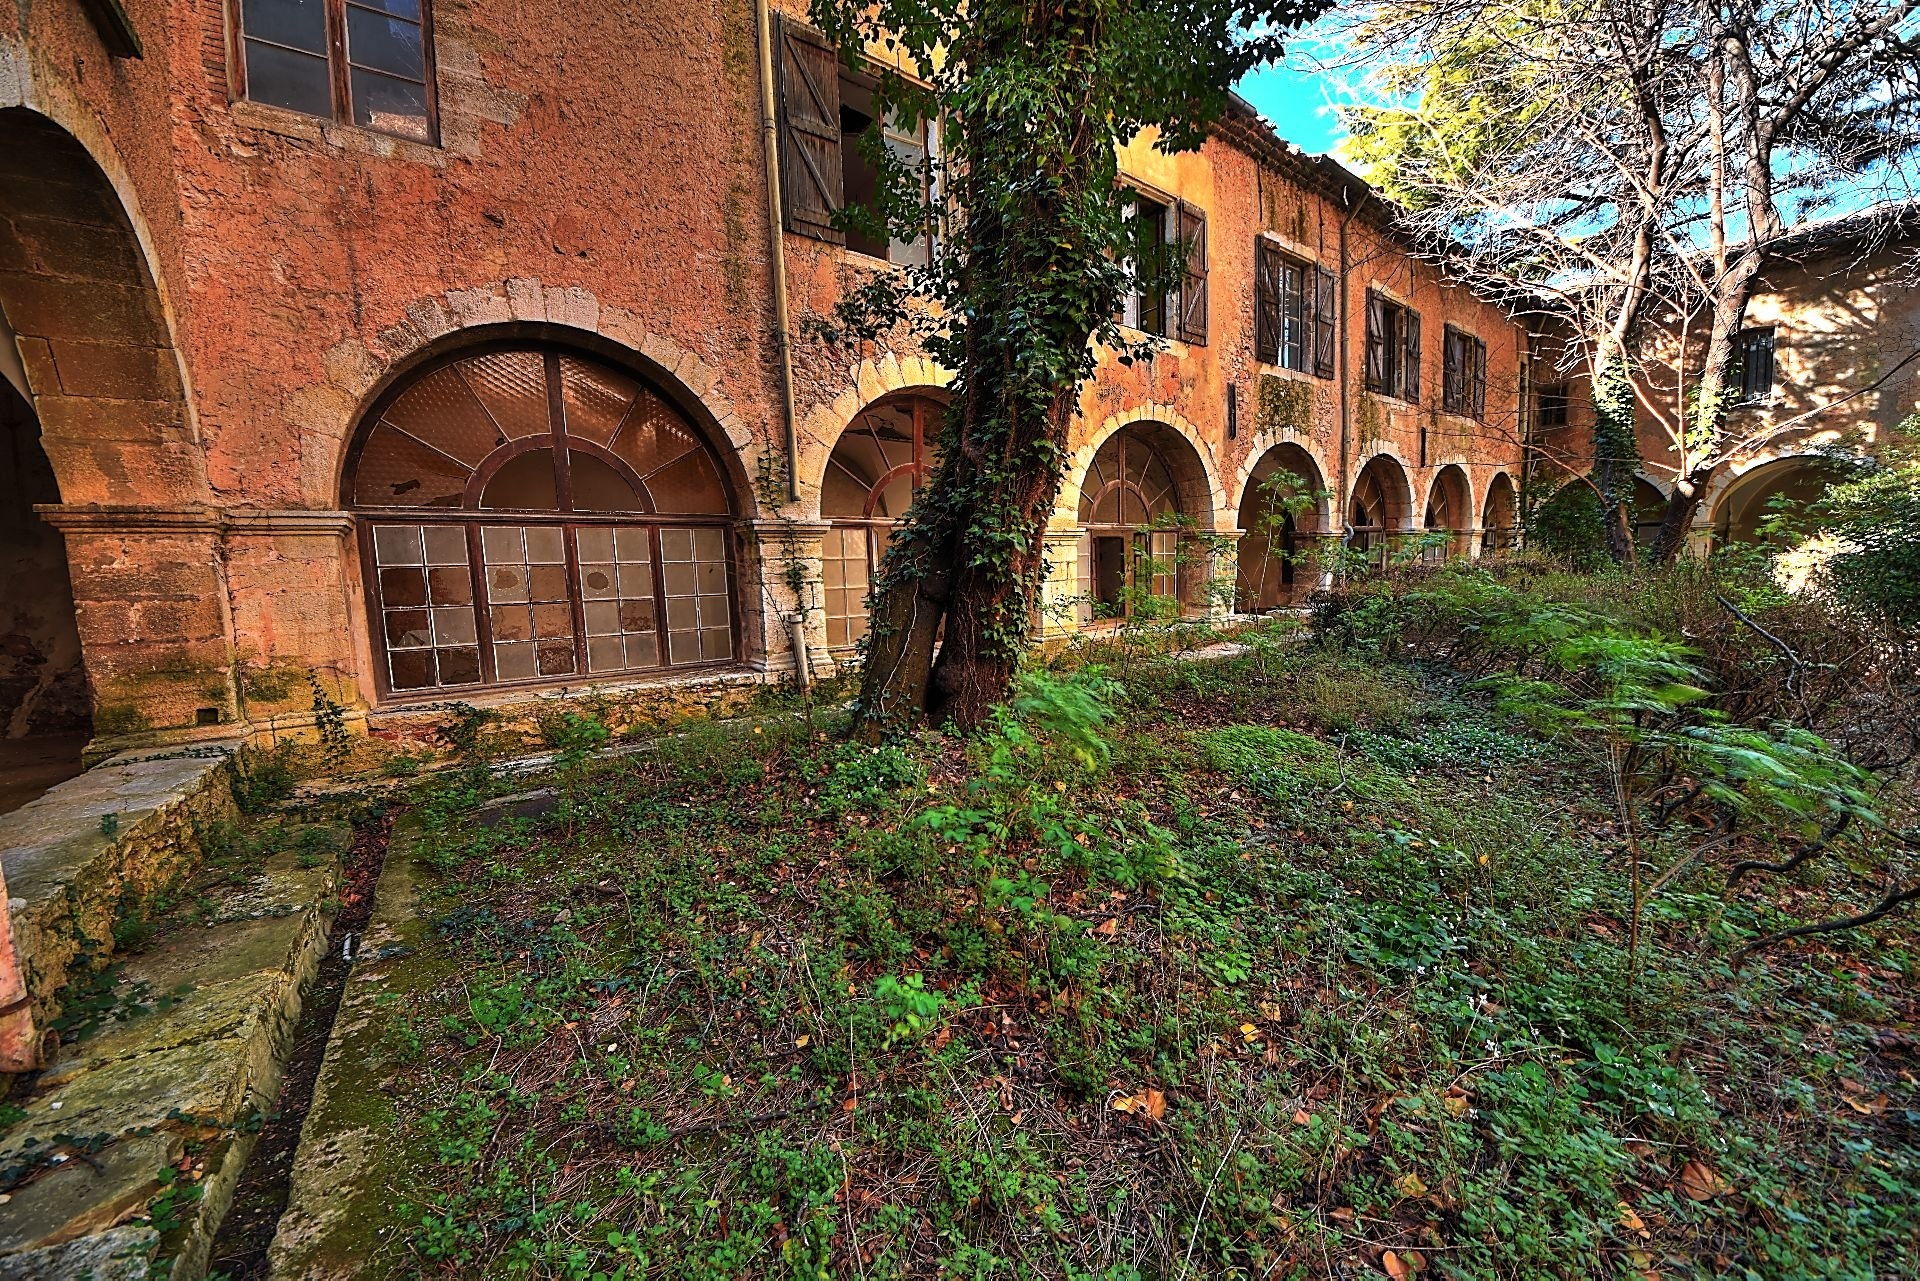 Old convent with interior courtyard - Charm and authenticity - Aups Var Verdon